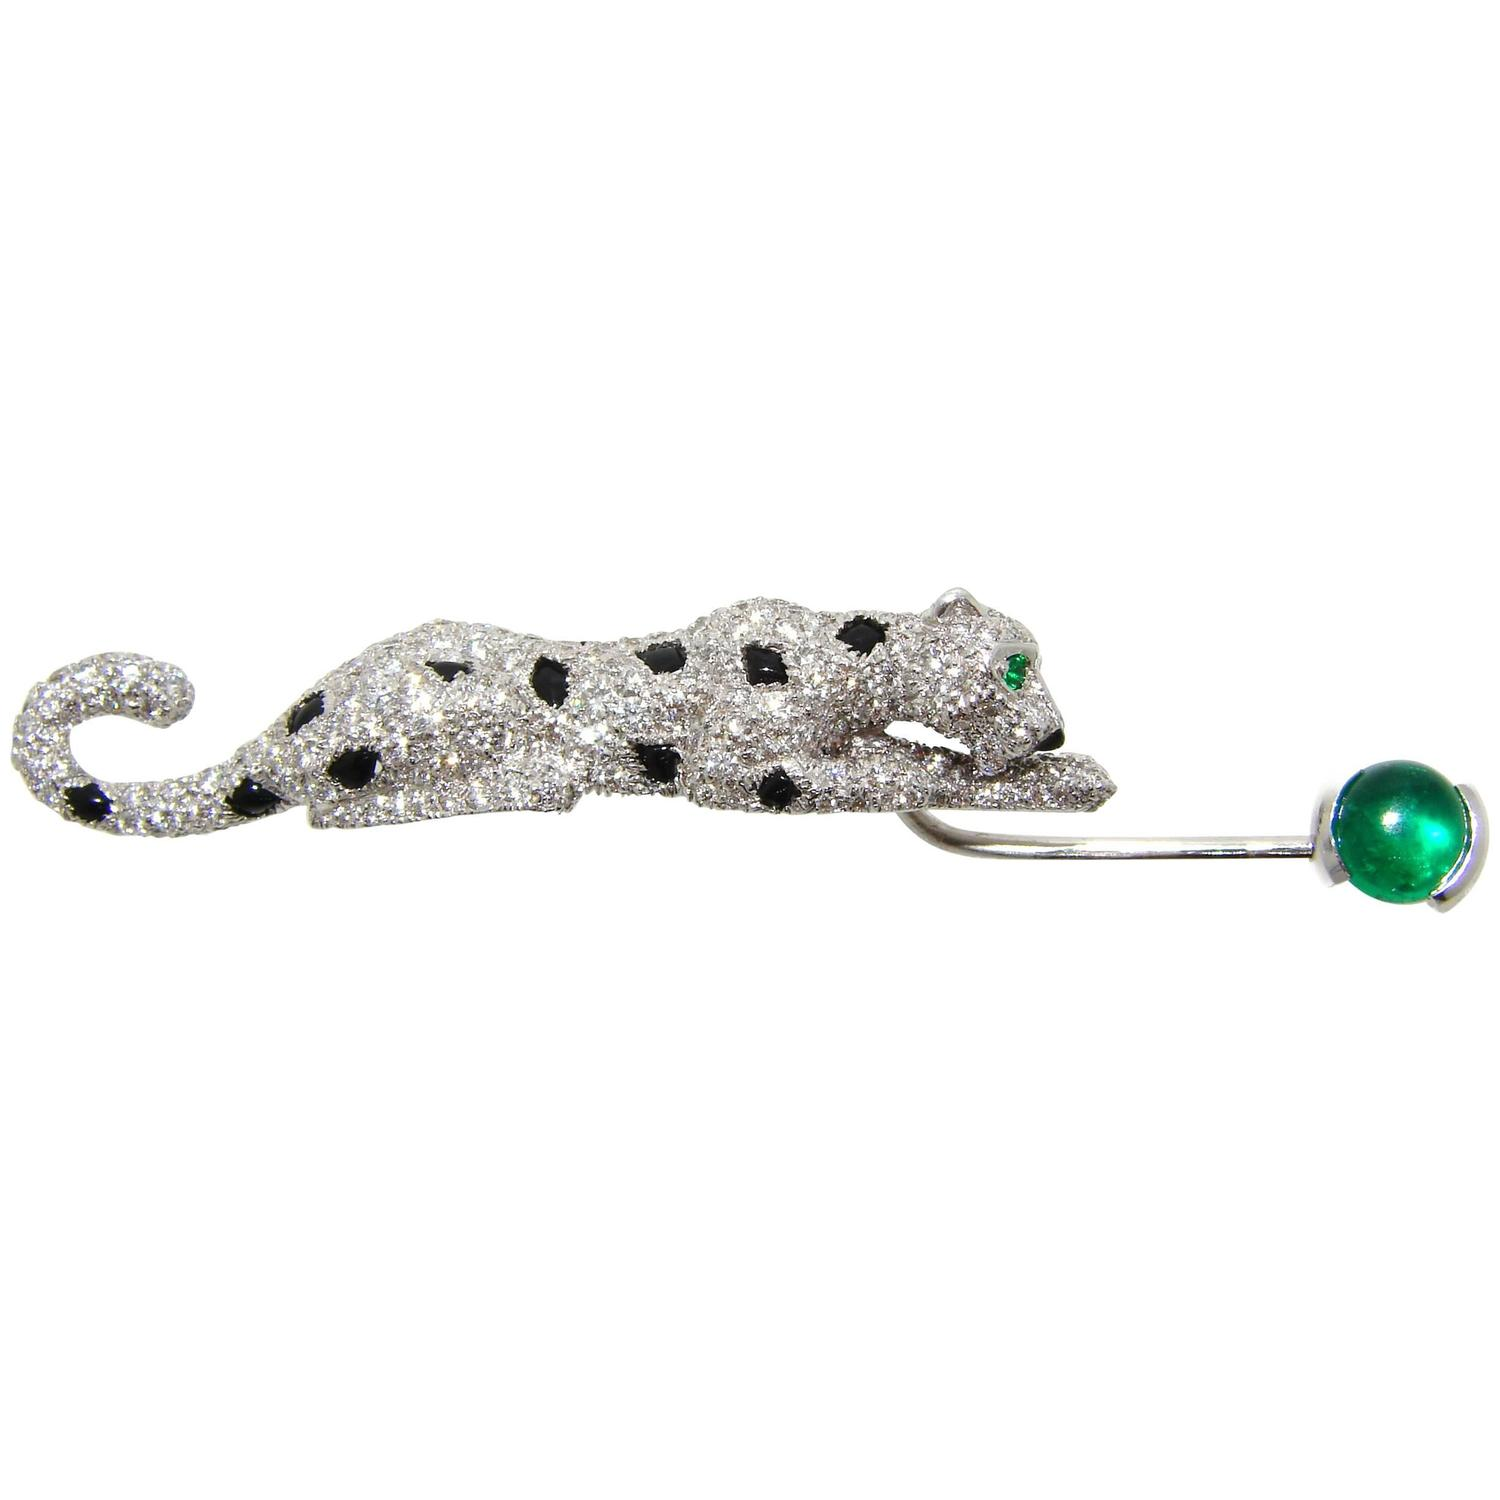 and jabot bead emerald george diamond pin sapphire formerly by desktopdefault cartier moore mrs owned